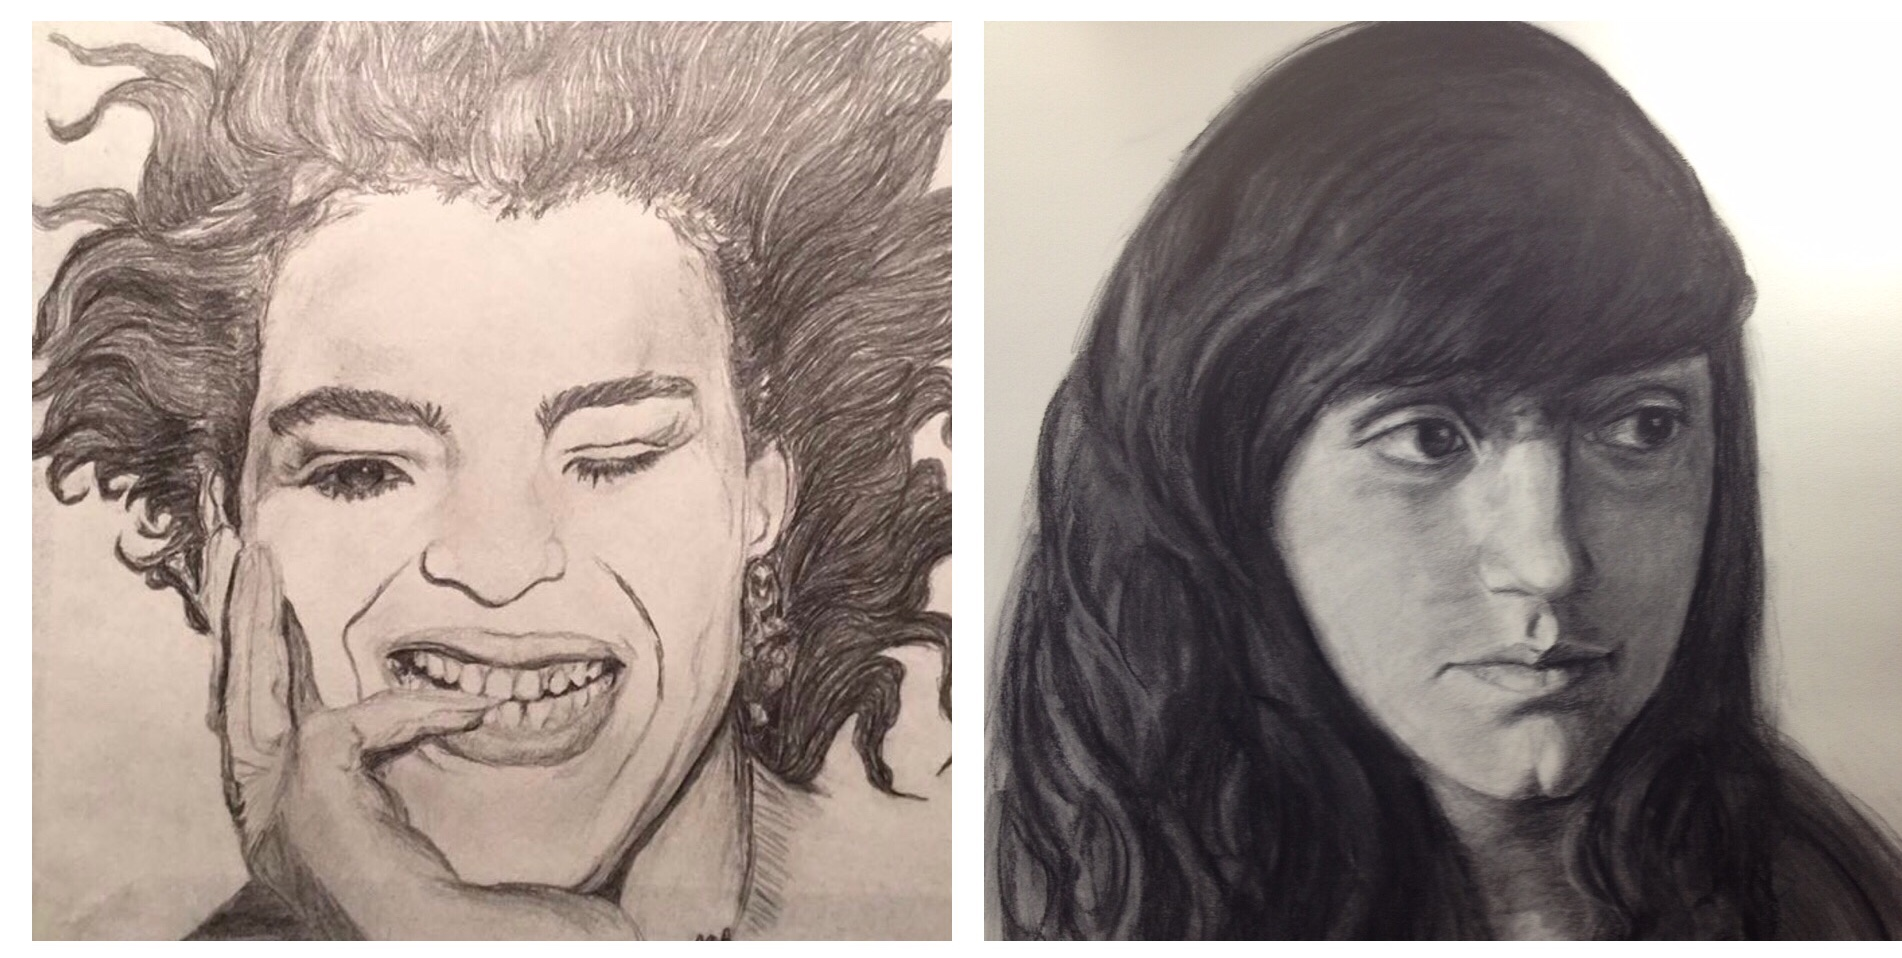 Drawing on the left circa 1986, and on the right 2013